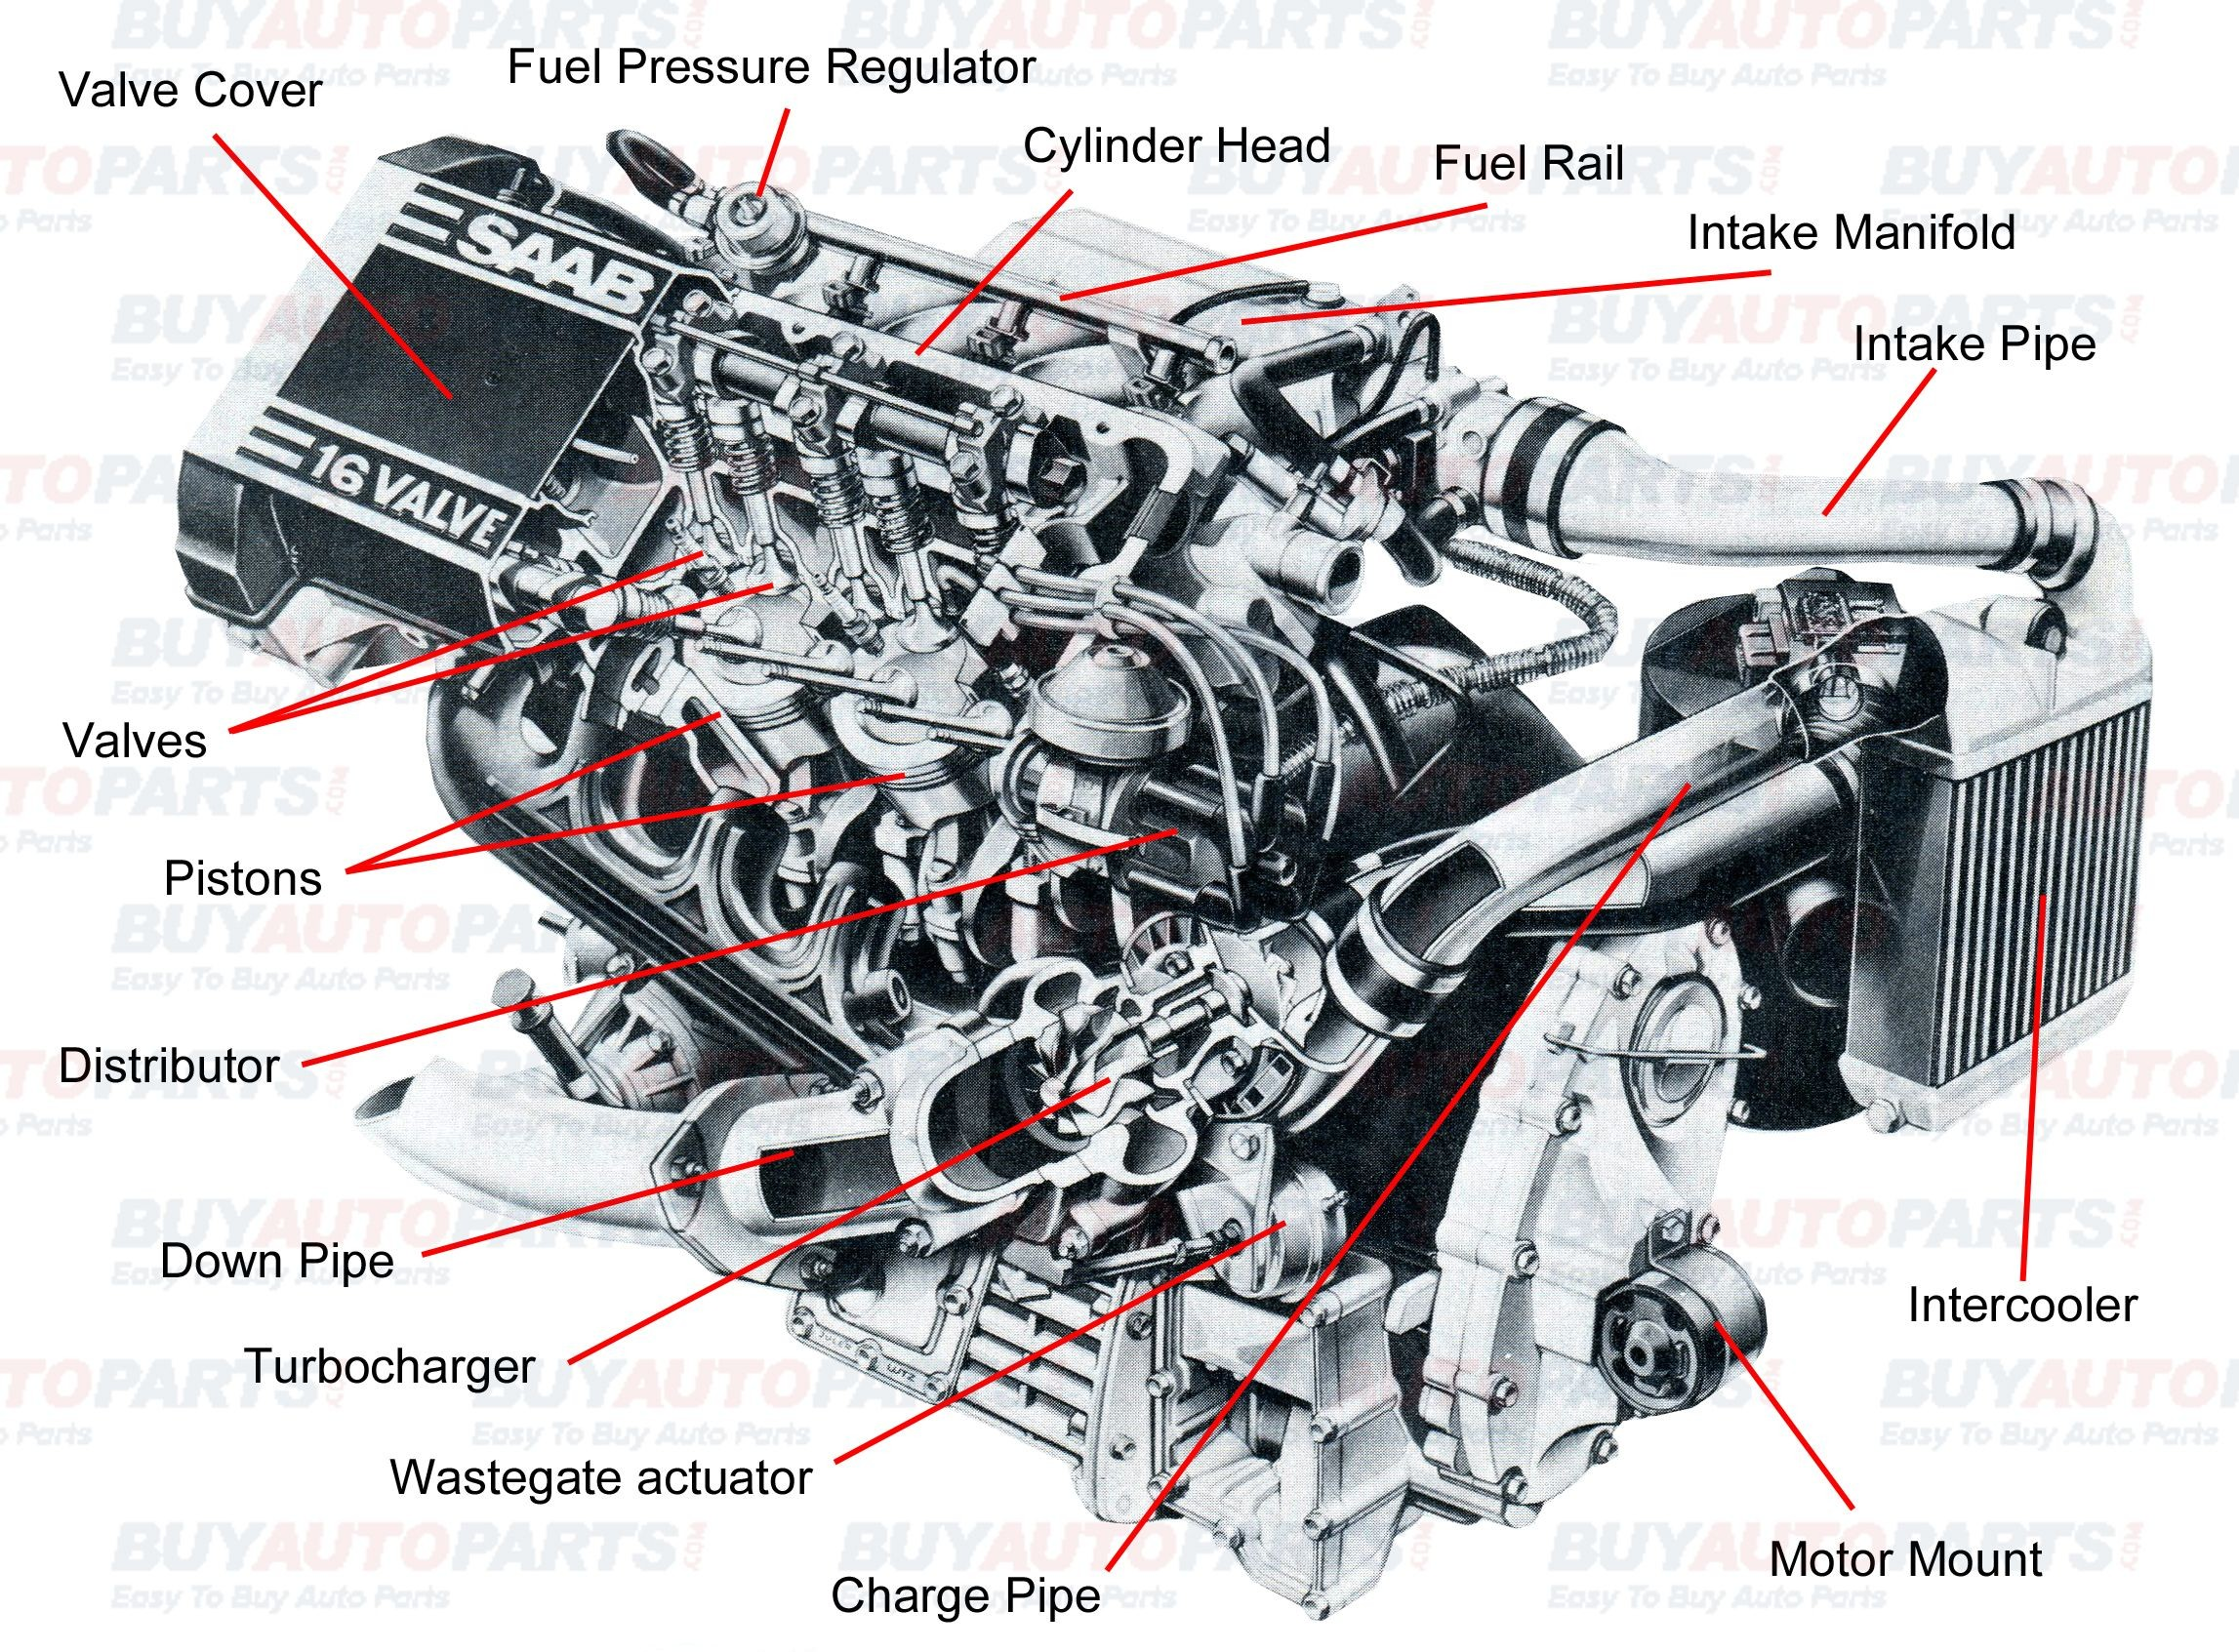 Car Structure Diagram Pin by Jimmiejanet Testellamwfz On What Does An Engine with Turbo Of Car Structure Diagram